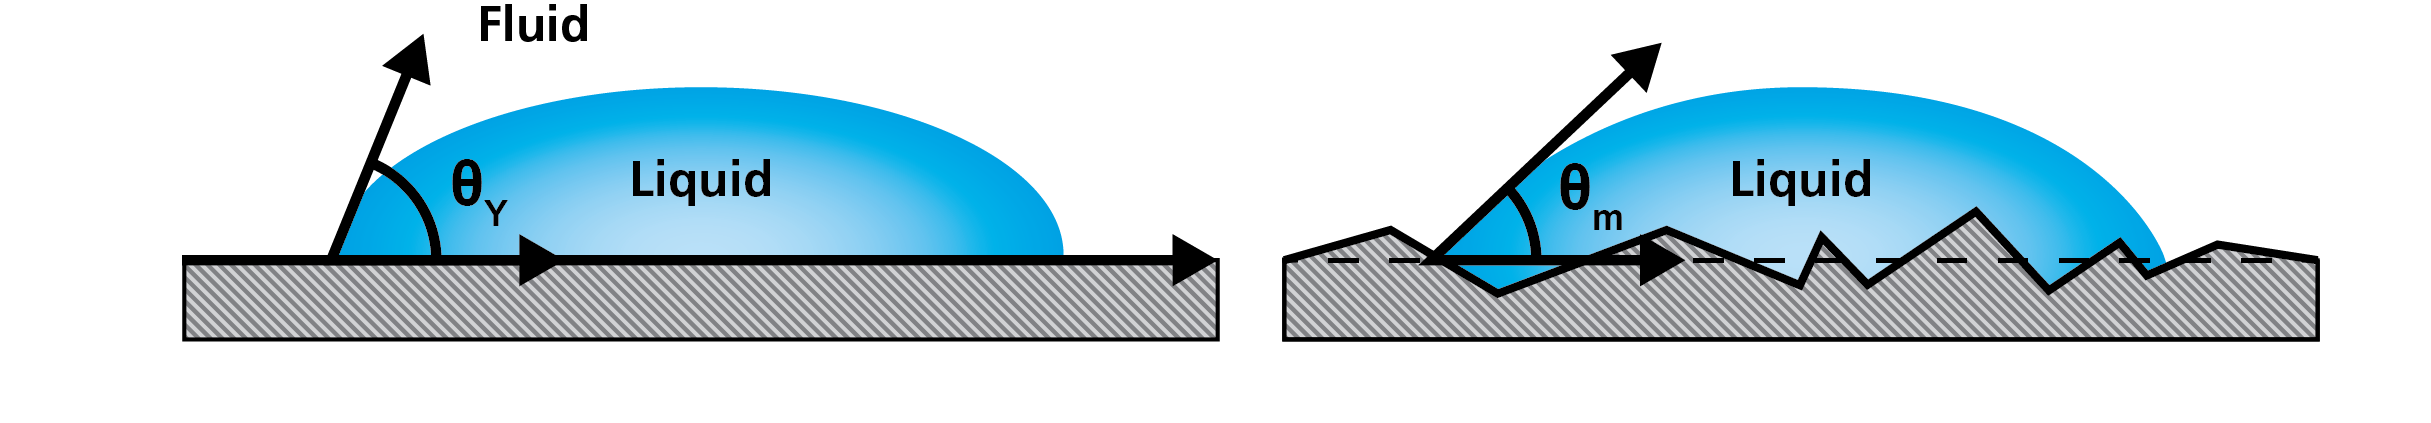 Figure 2. Influence of surface roughness on wetting can be taken into account in the wetting analyses.